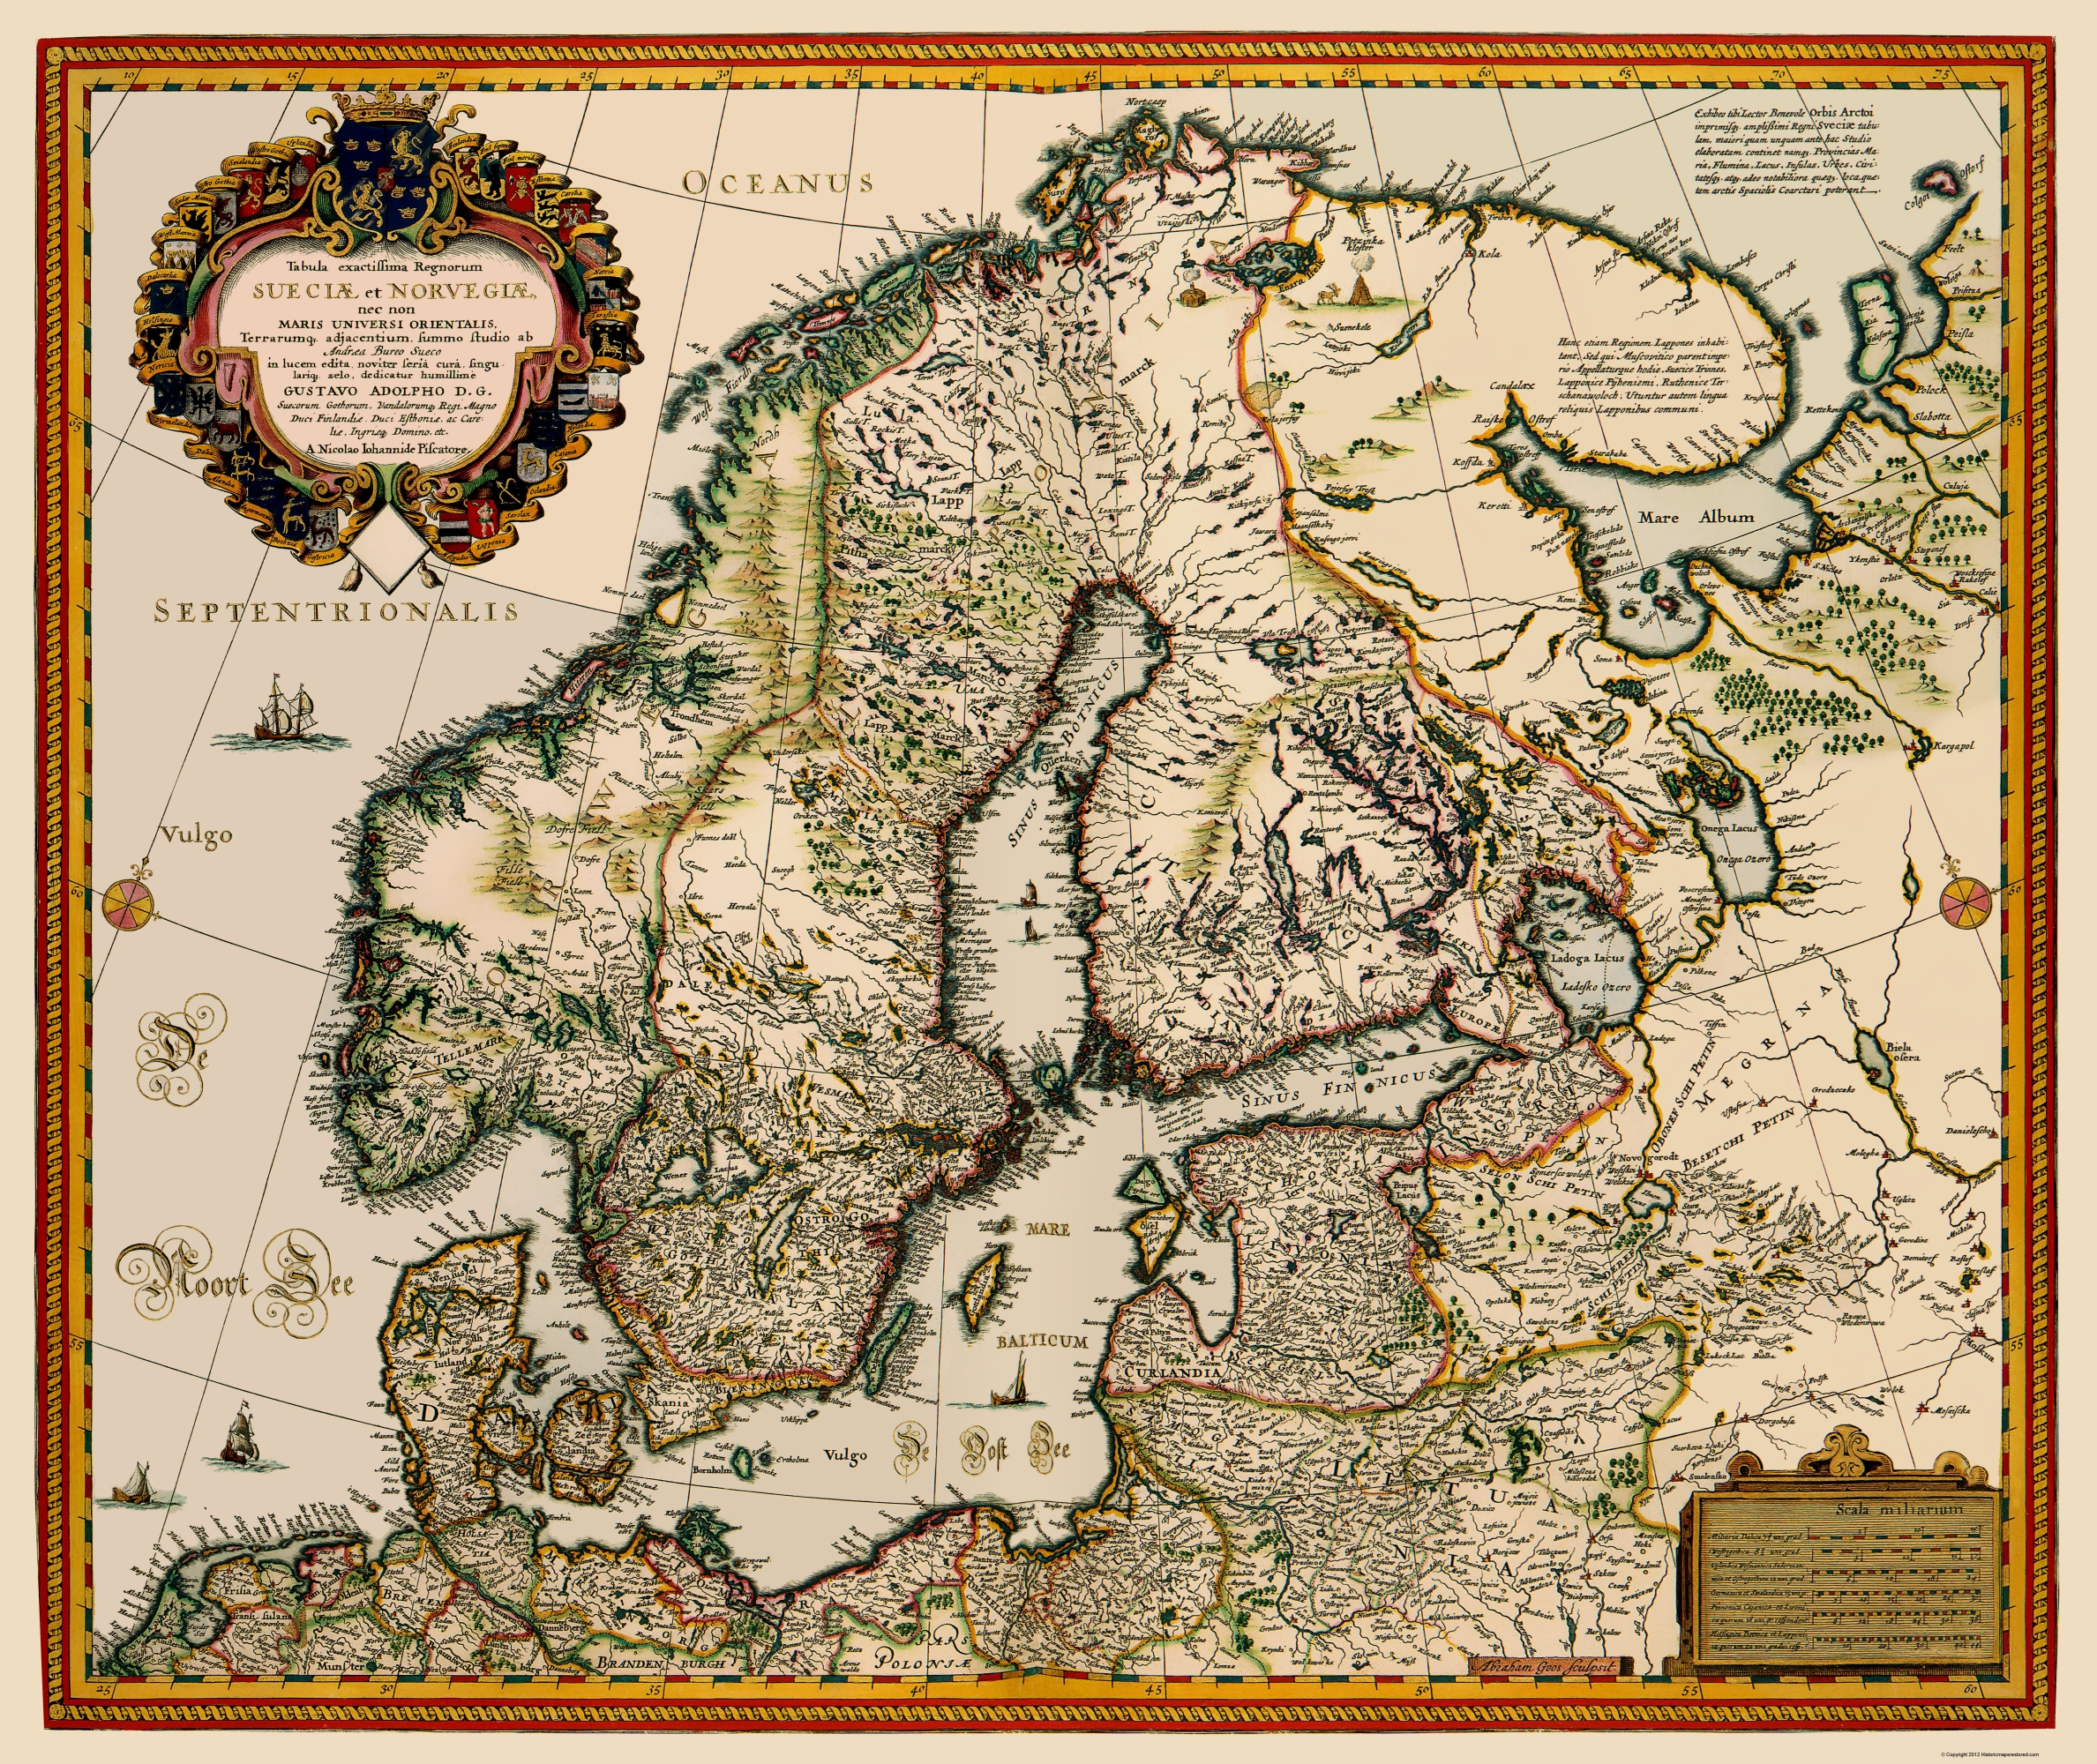 Old Scandinavia Map - Scandinavia Visscher 1656